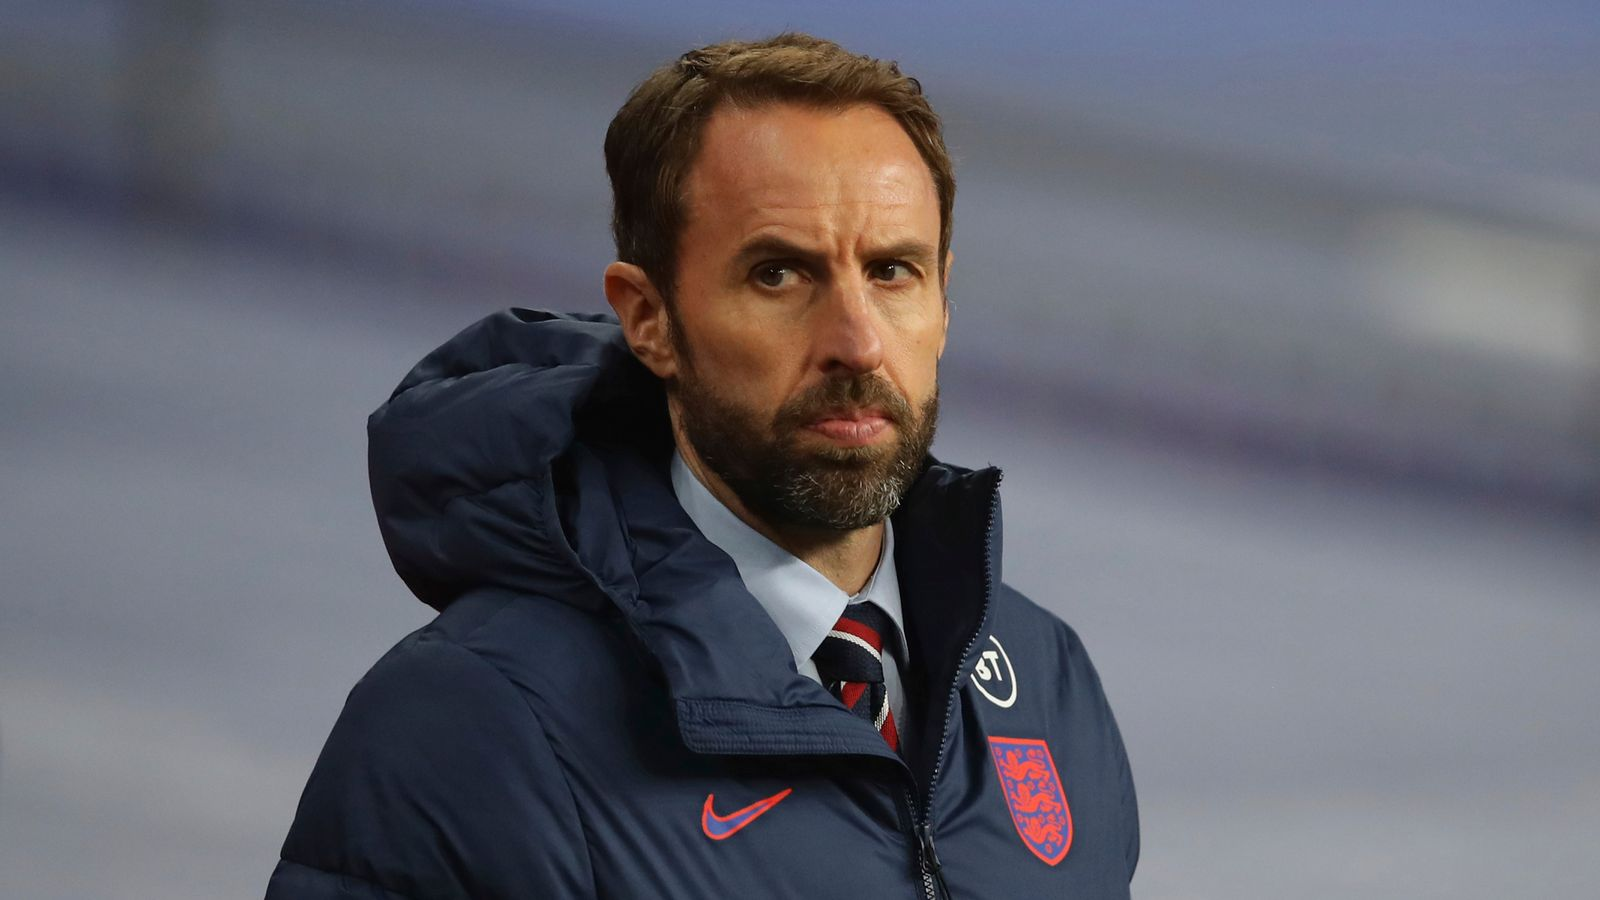 Euro 2020 Group D preview: Full squads, players to watch, odds and chances